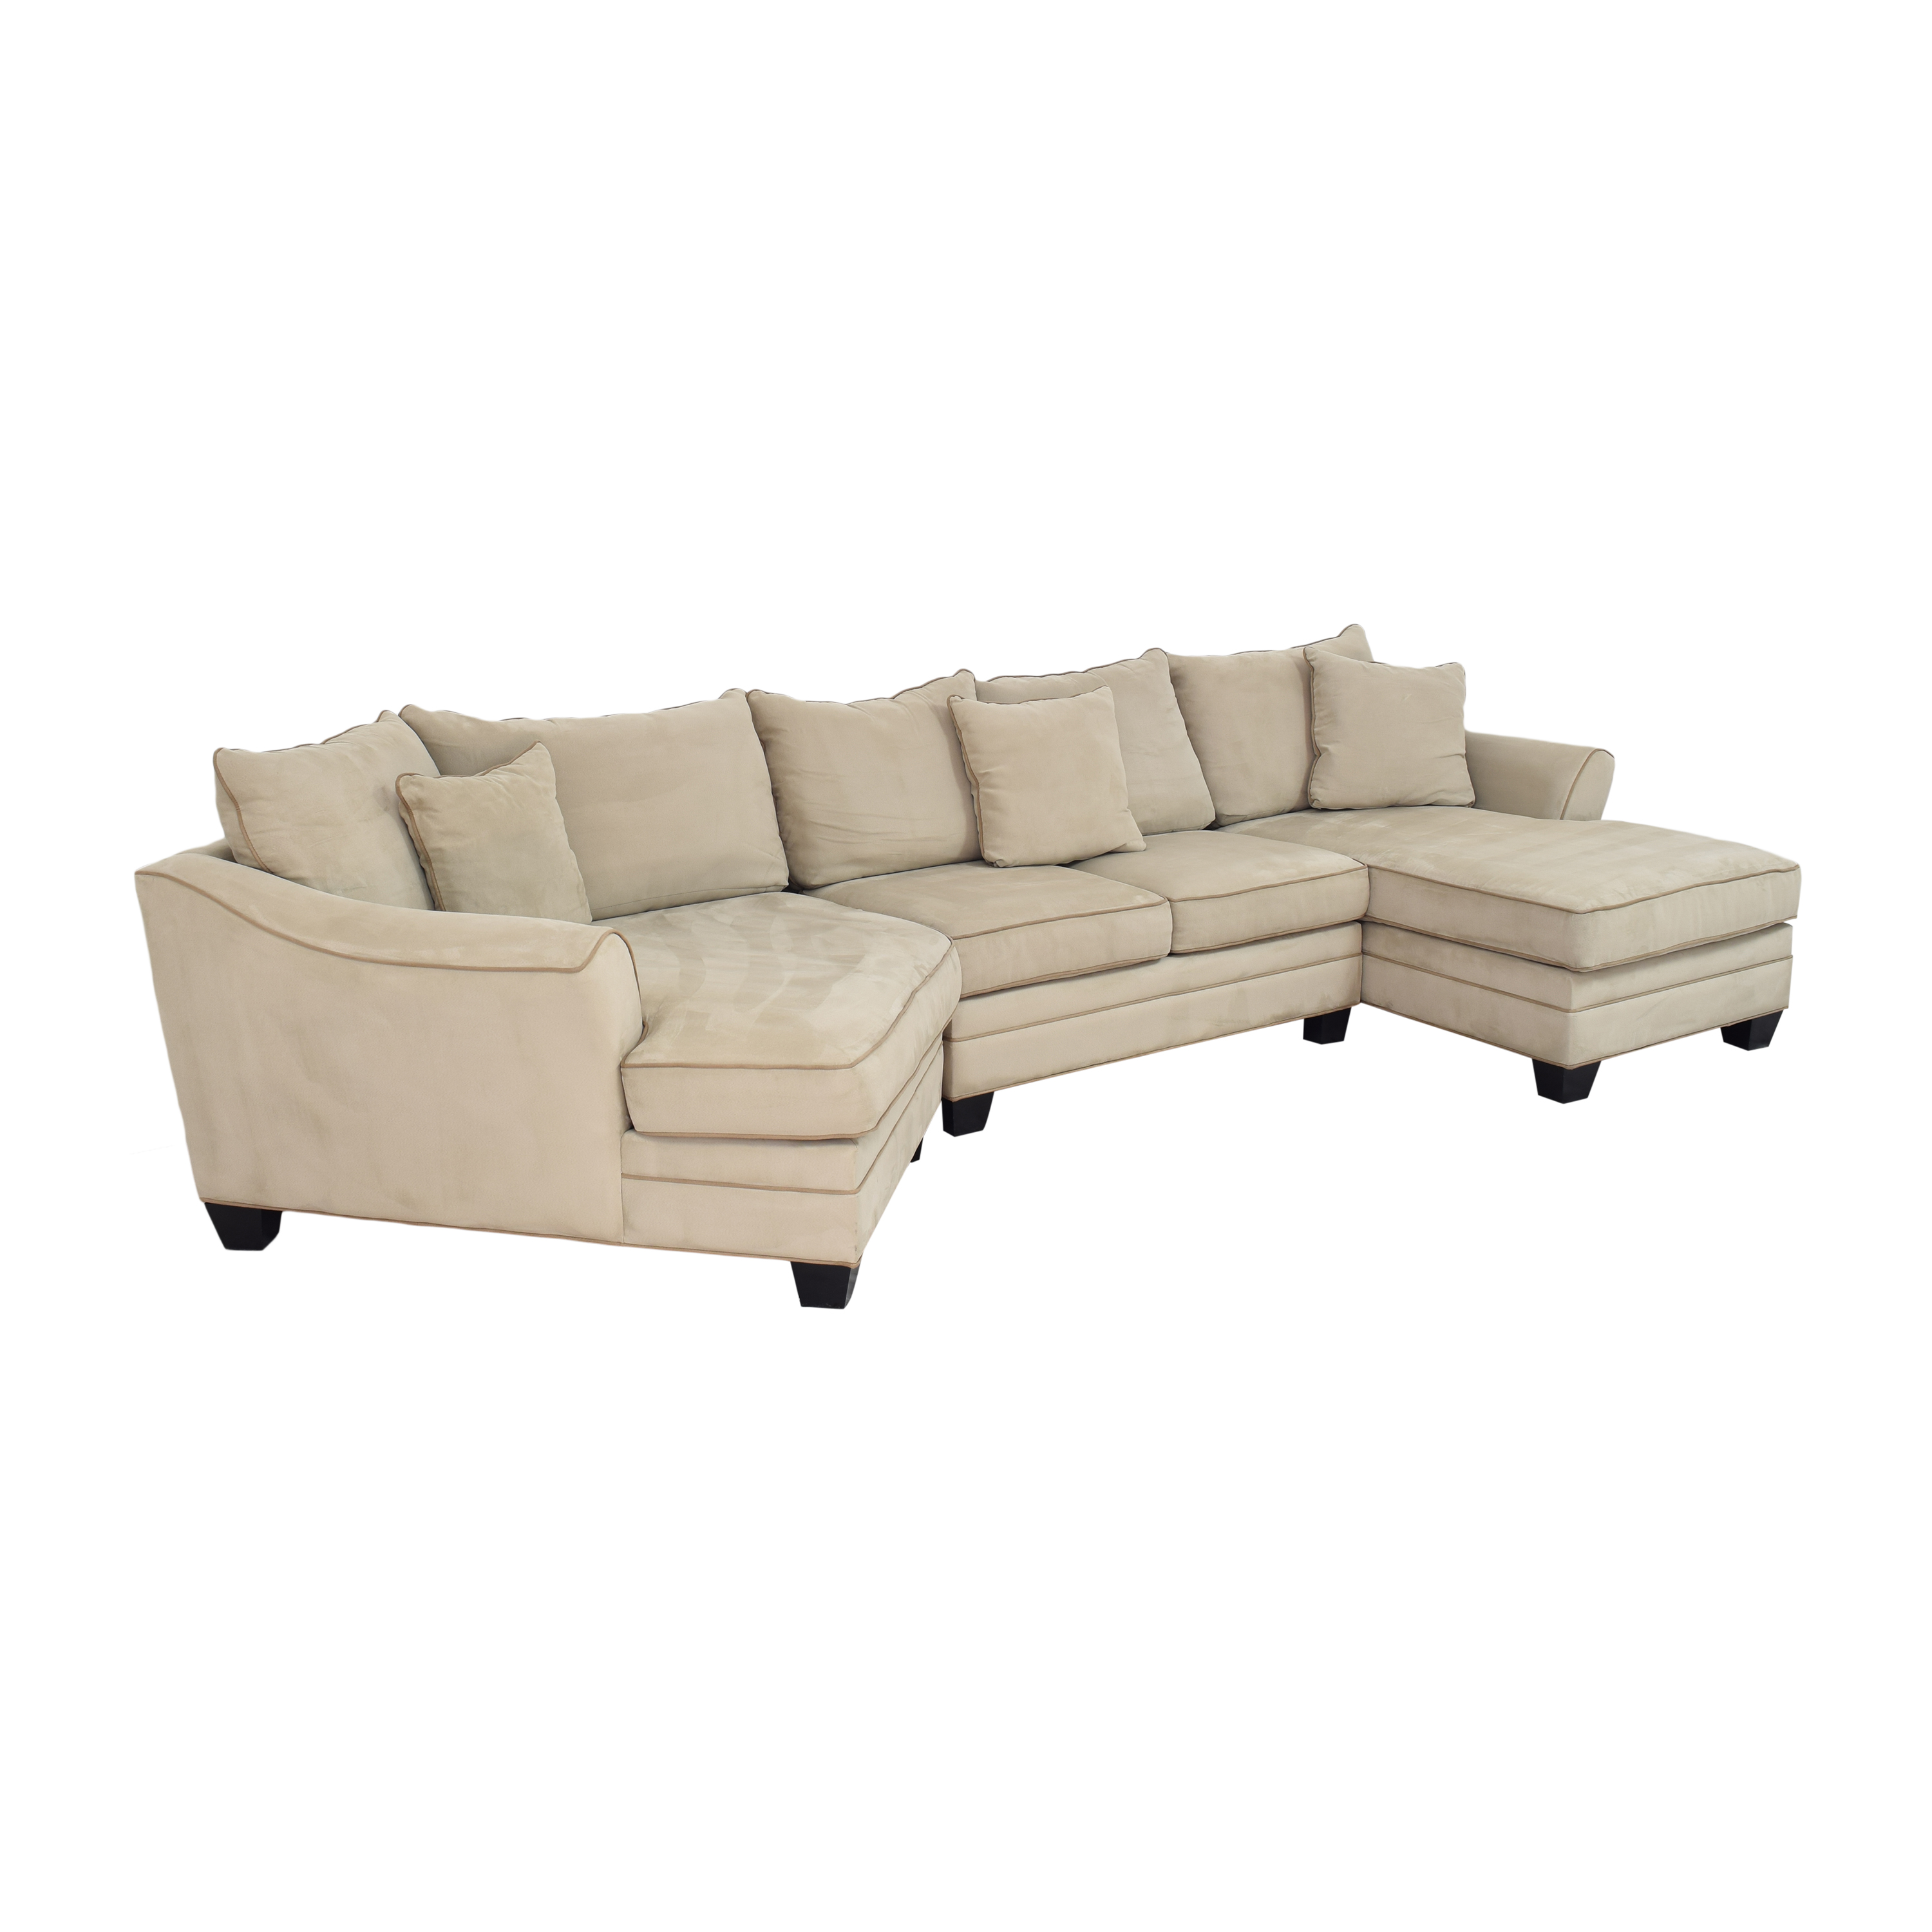 shop Raymour & Flanigan Raymour & Flanigan Foresthill Sectional Sofa online